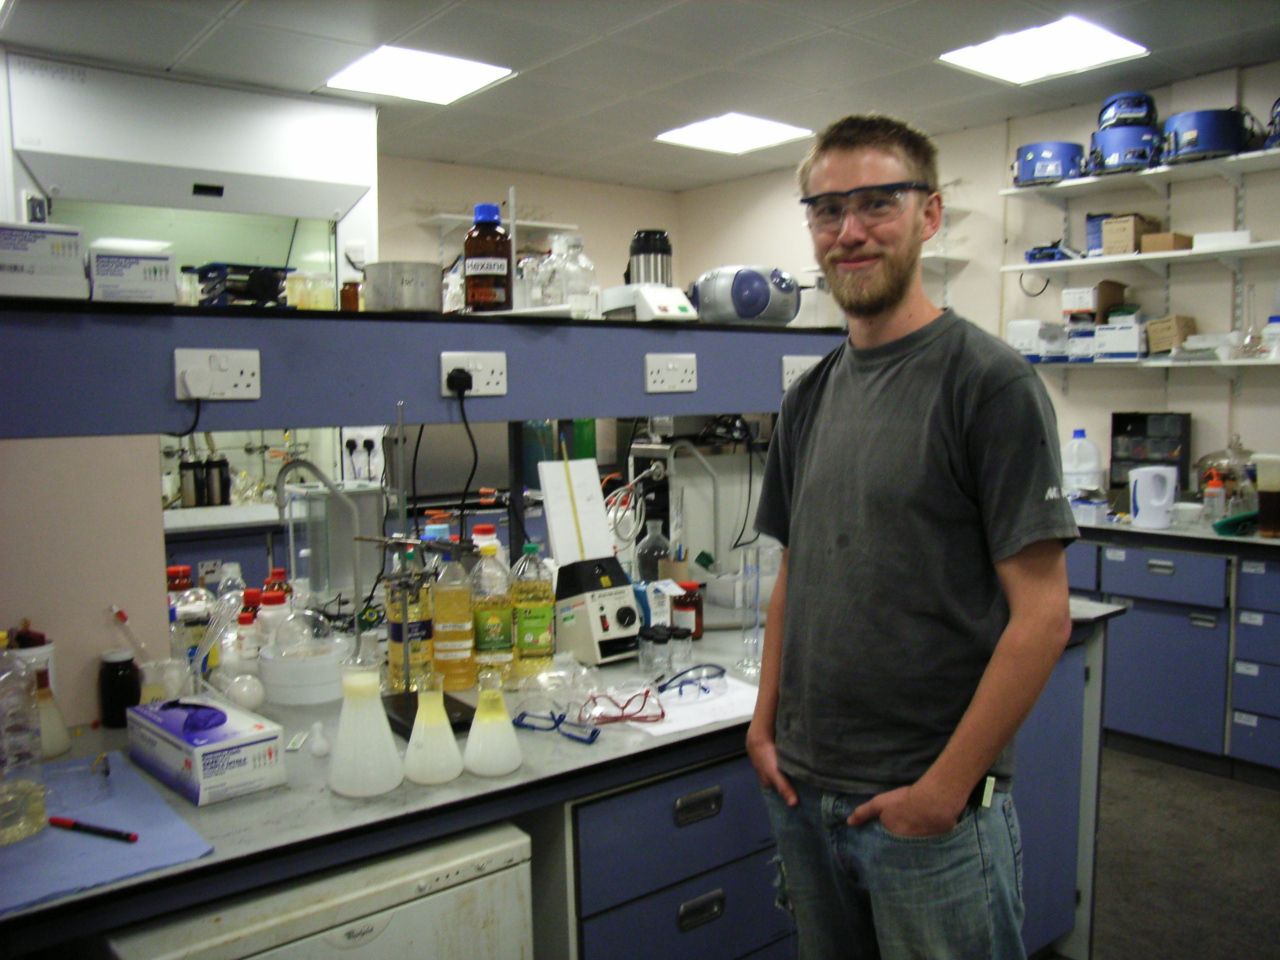 Bath University PhD Student Chris Chuck with a fresh batch of bio diesel, made from vegetable oil